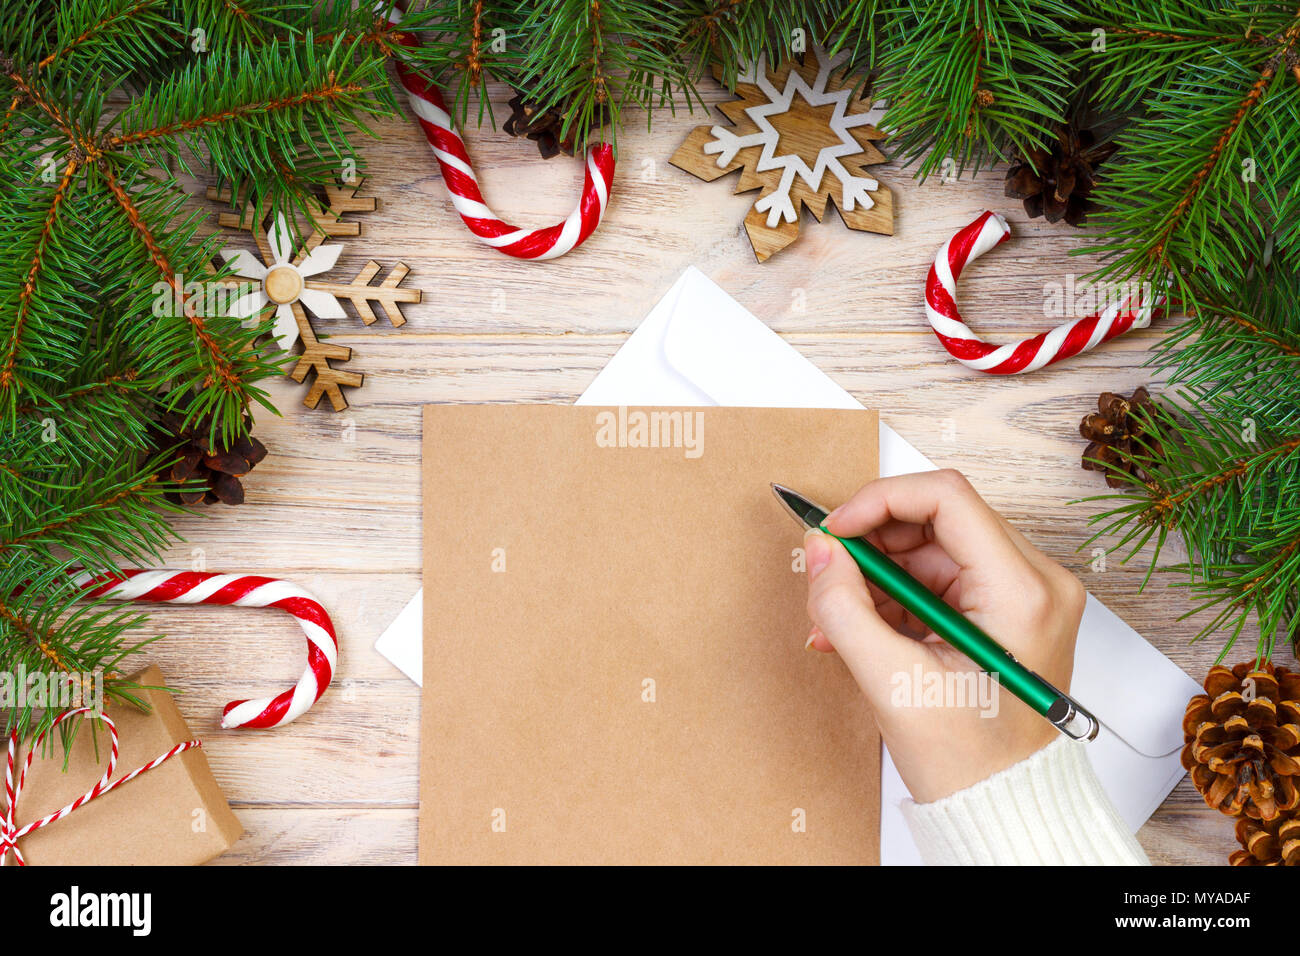 Girl Hand Writing Christmas Letter On Craft Paper With Decorations